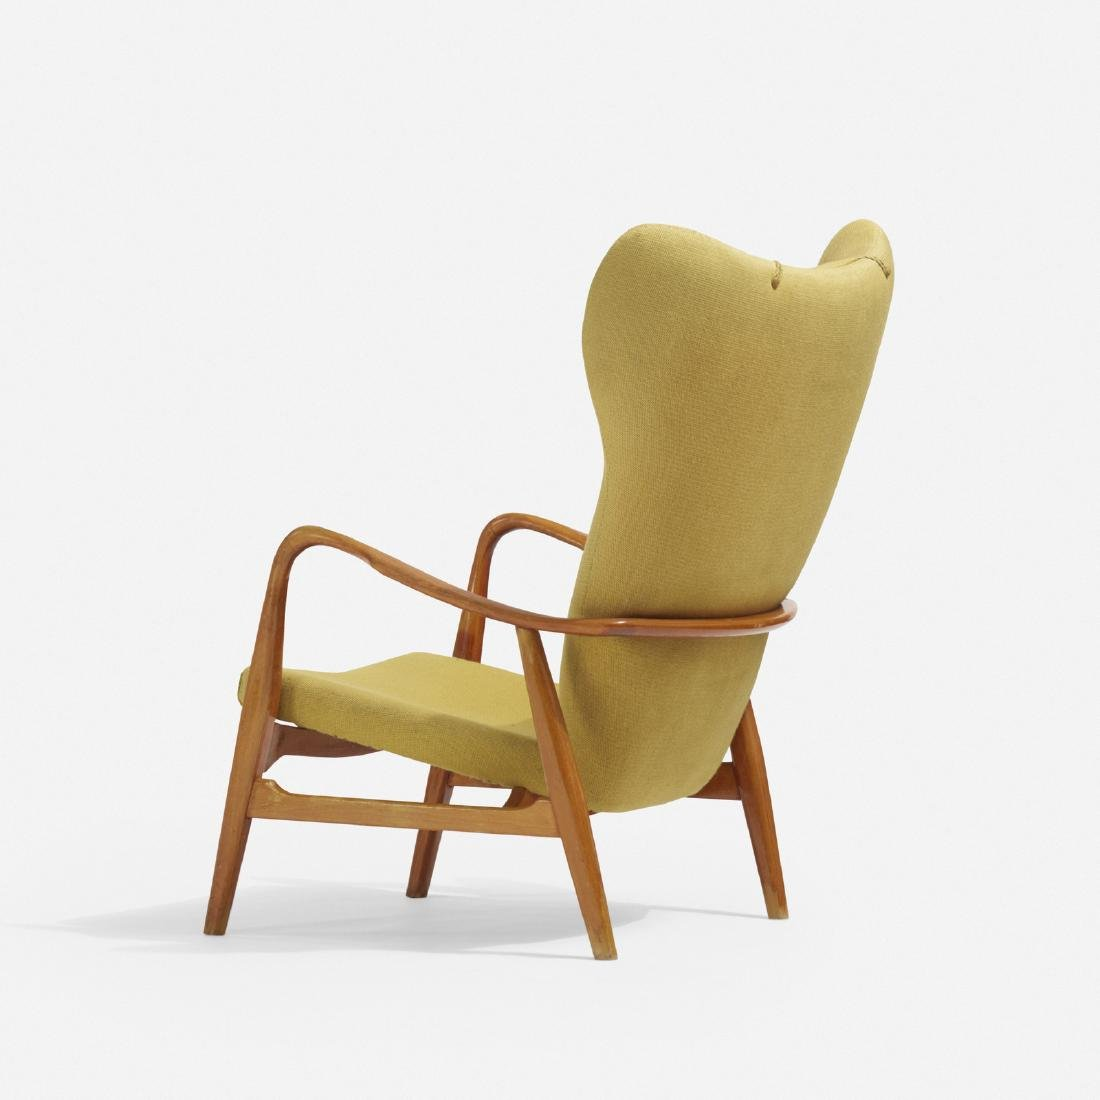 Acton Schubel and Ib Madsen, wingback armchair - 3